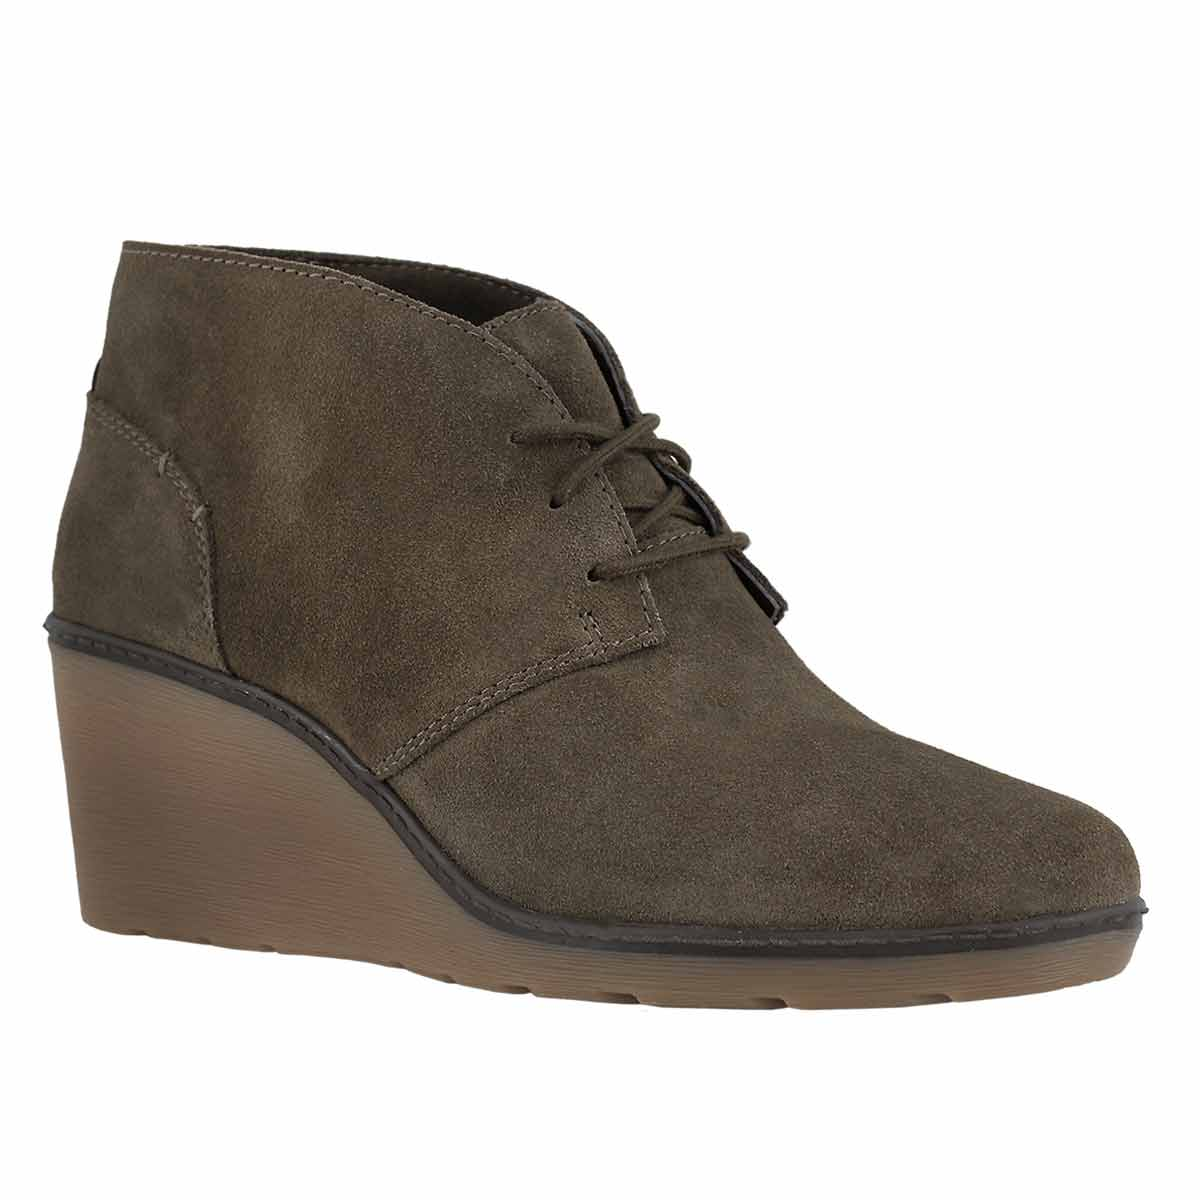 Lds Hazen Charm olive lace up wedge boot